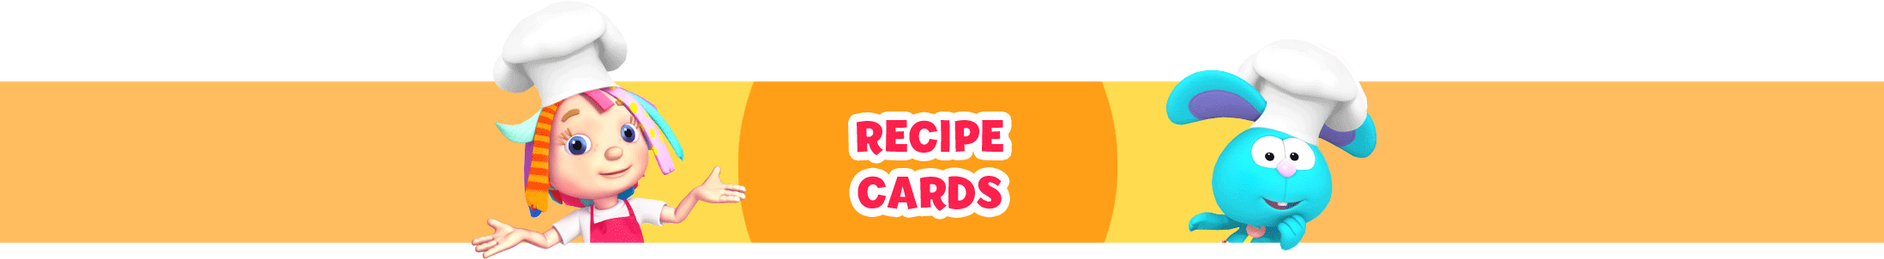 Recipe-Cards---Banner.png